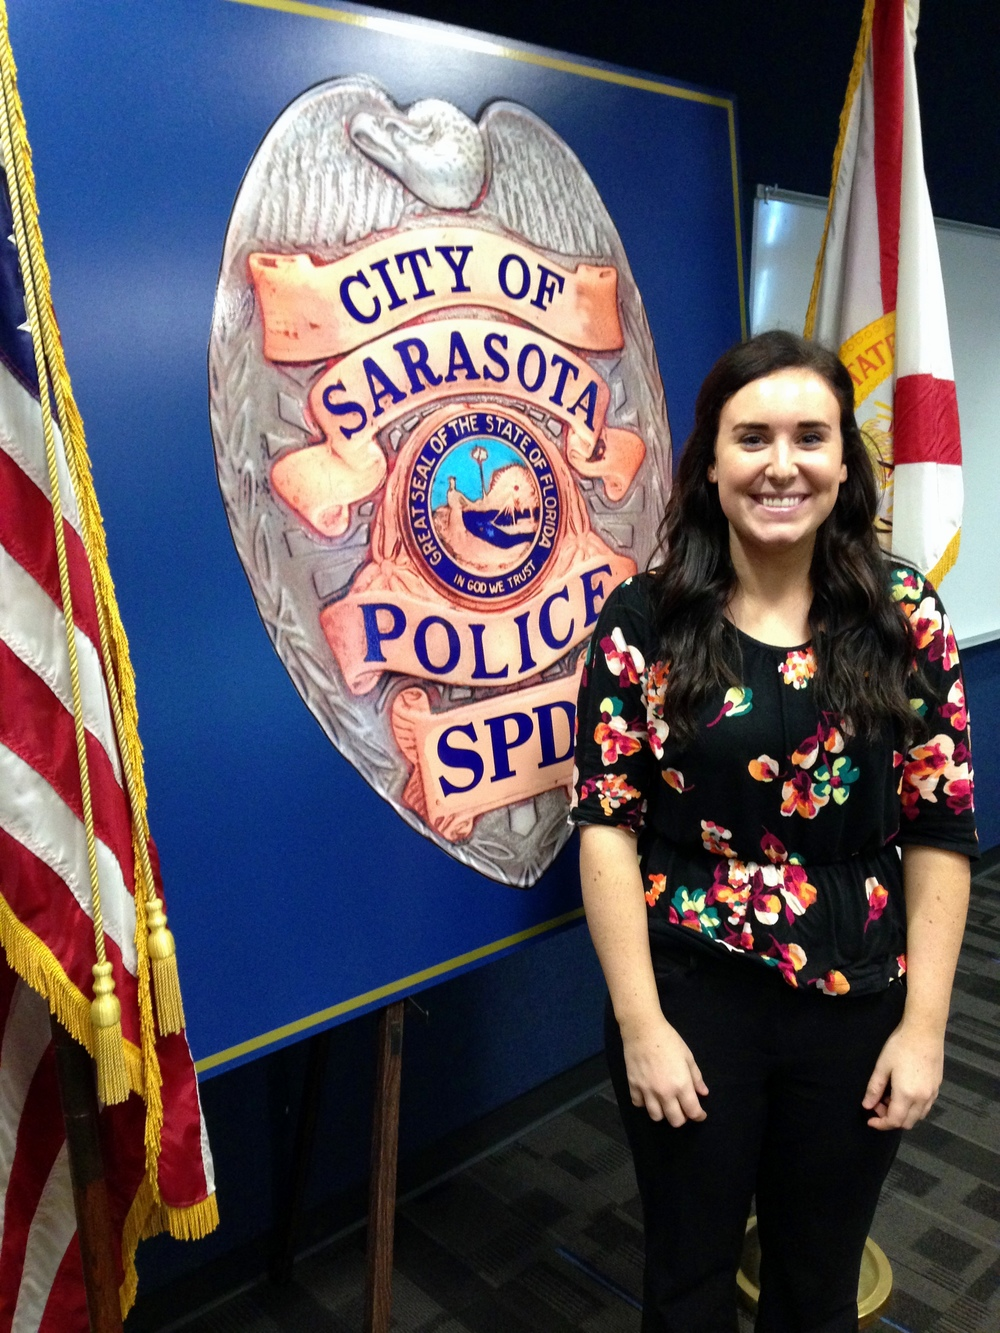 Brandy Borling joined the Sarasota Police Department on January 21, 2015 as an additional Victim Advocate for the Sarasota Police Department.